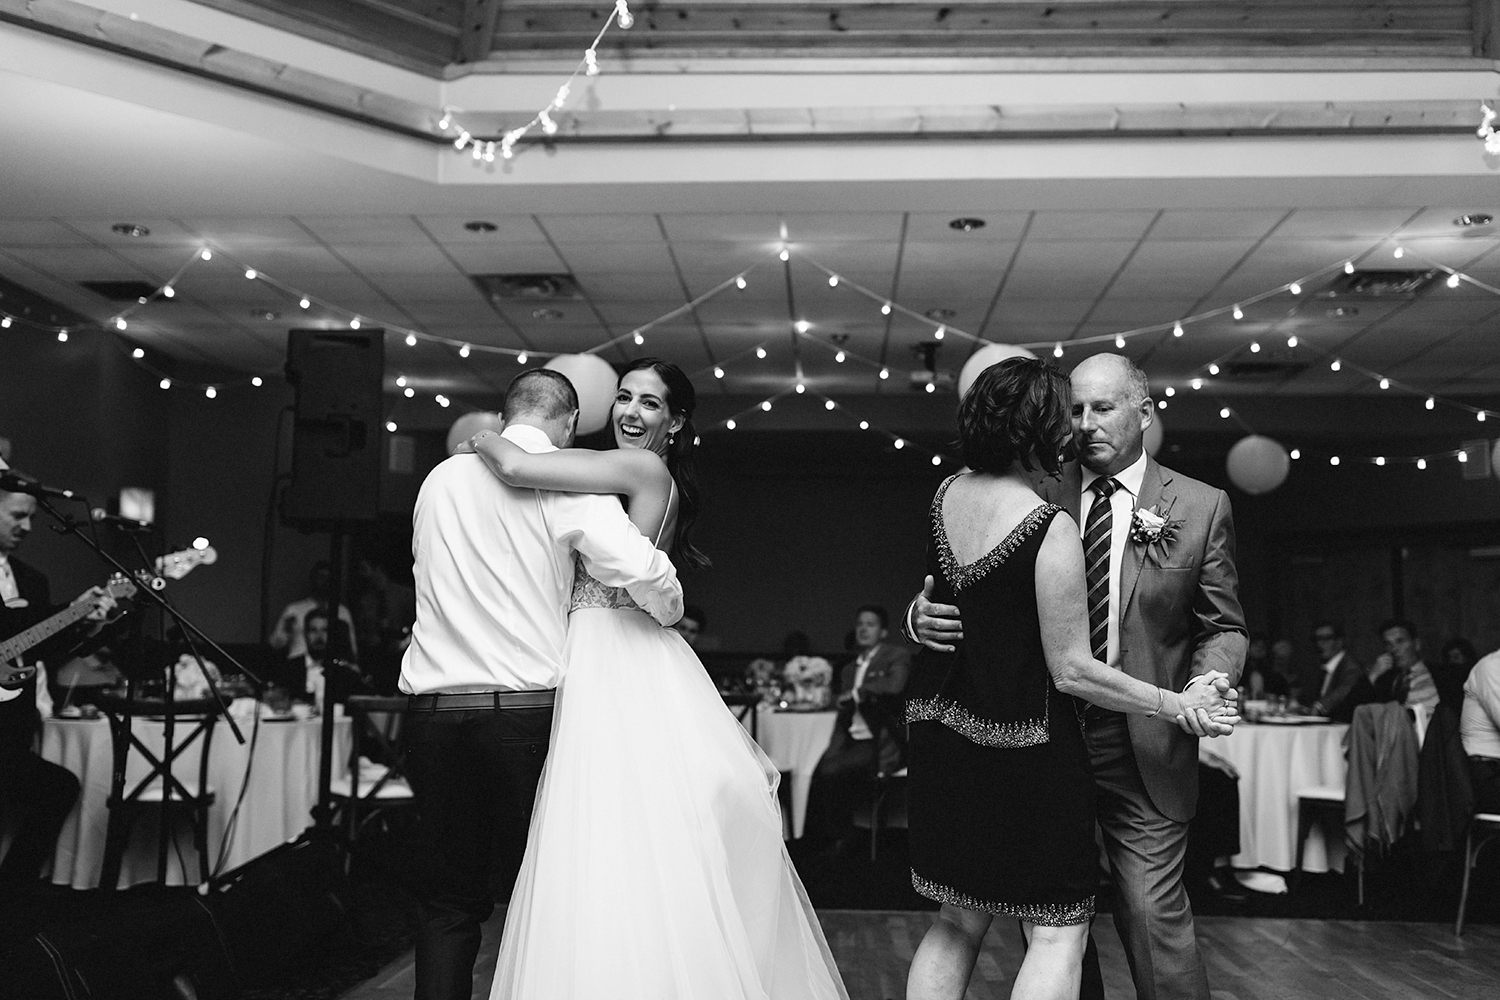 mother-son-dance--father-daughter-together-reception-At-Eganridge-Resort-Venue-Muskoka-Ontario-Wedding-Photography-by-Ryanne-Hollies-Photography-Toronto-Documentary-Wedding-Photographer.jpg